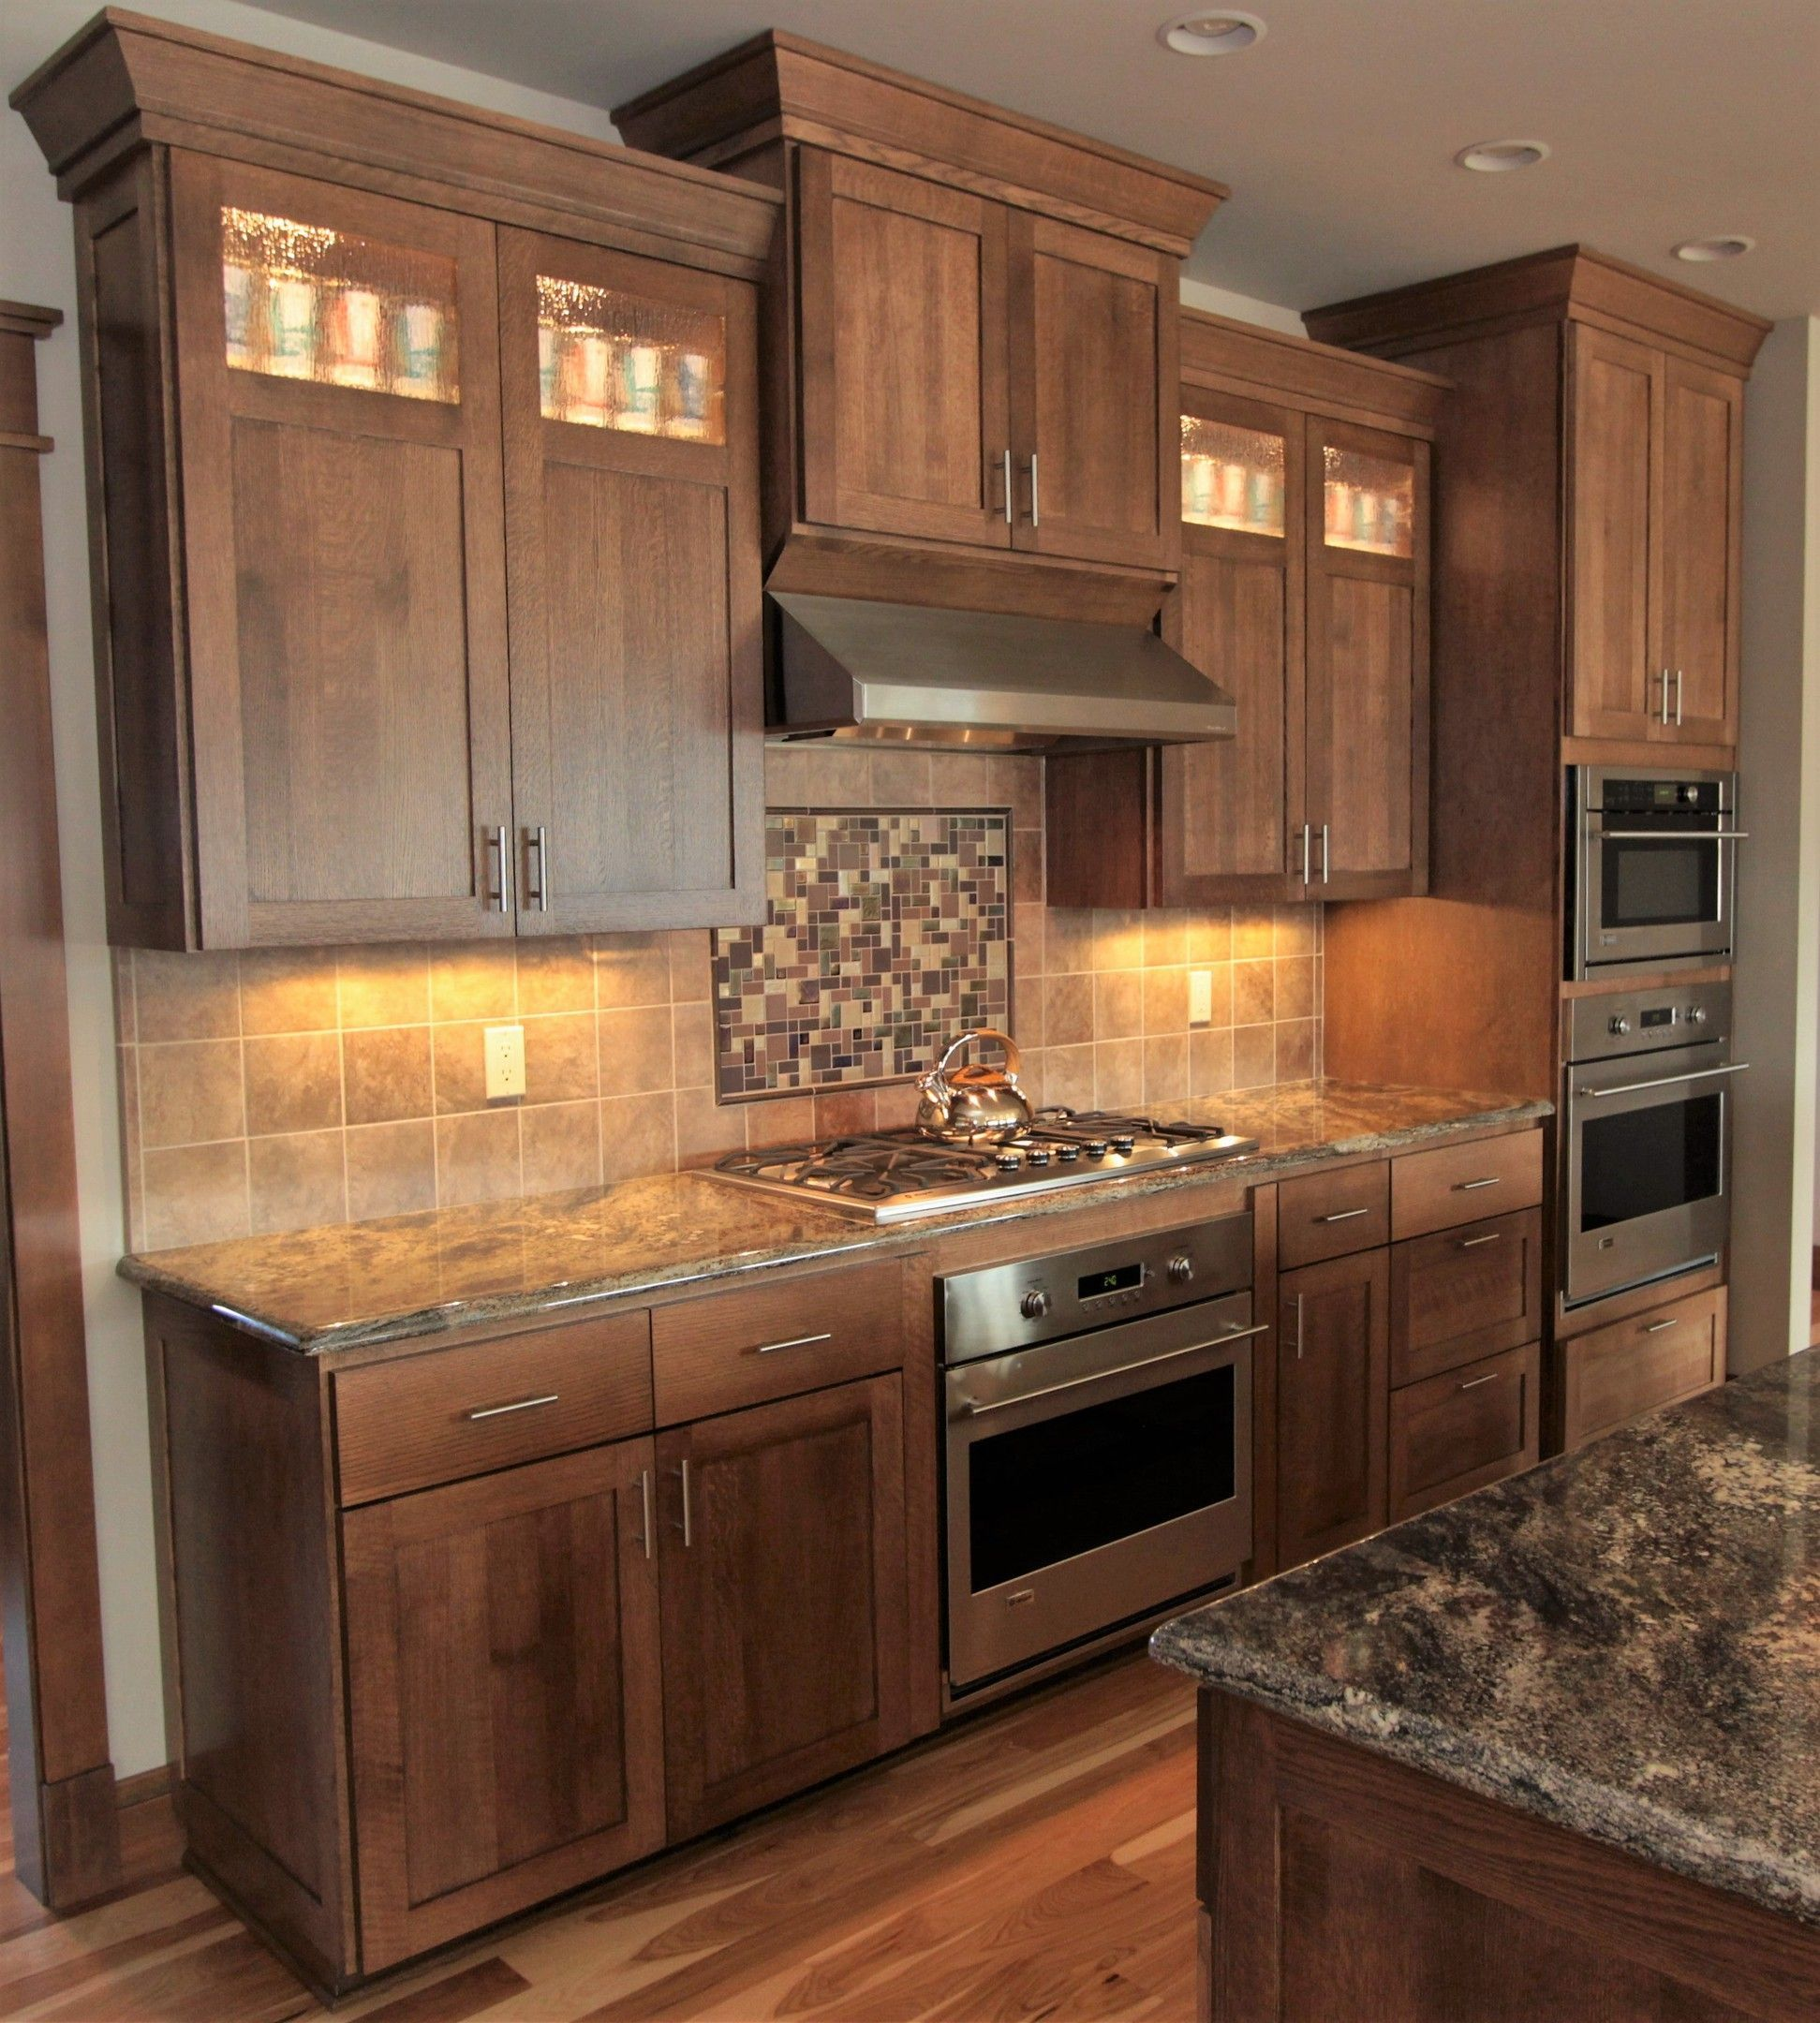 Buying kitchen cabinets seems like an easy task. thumb kitchen shaker style quartersawn oak recessed panel ...